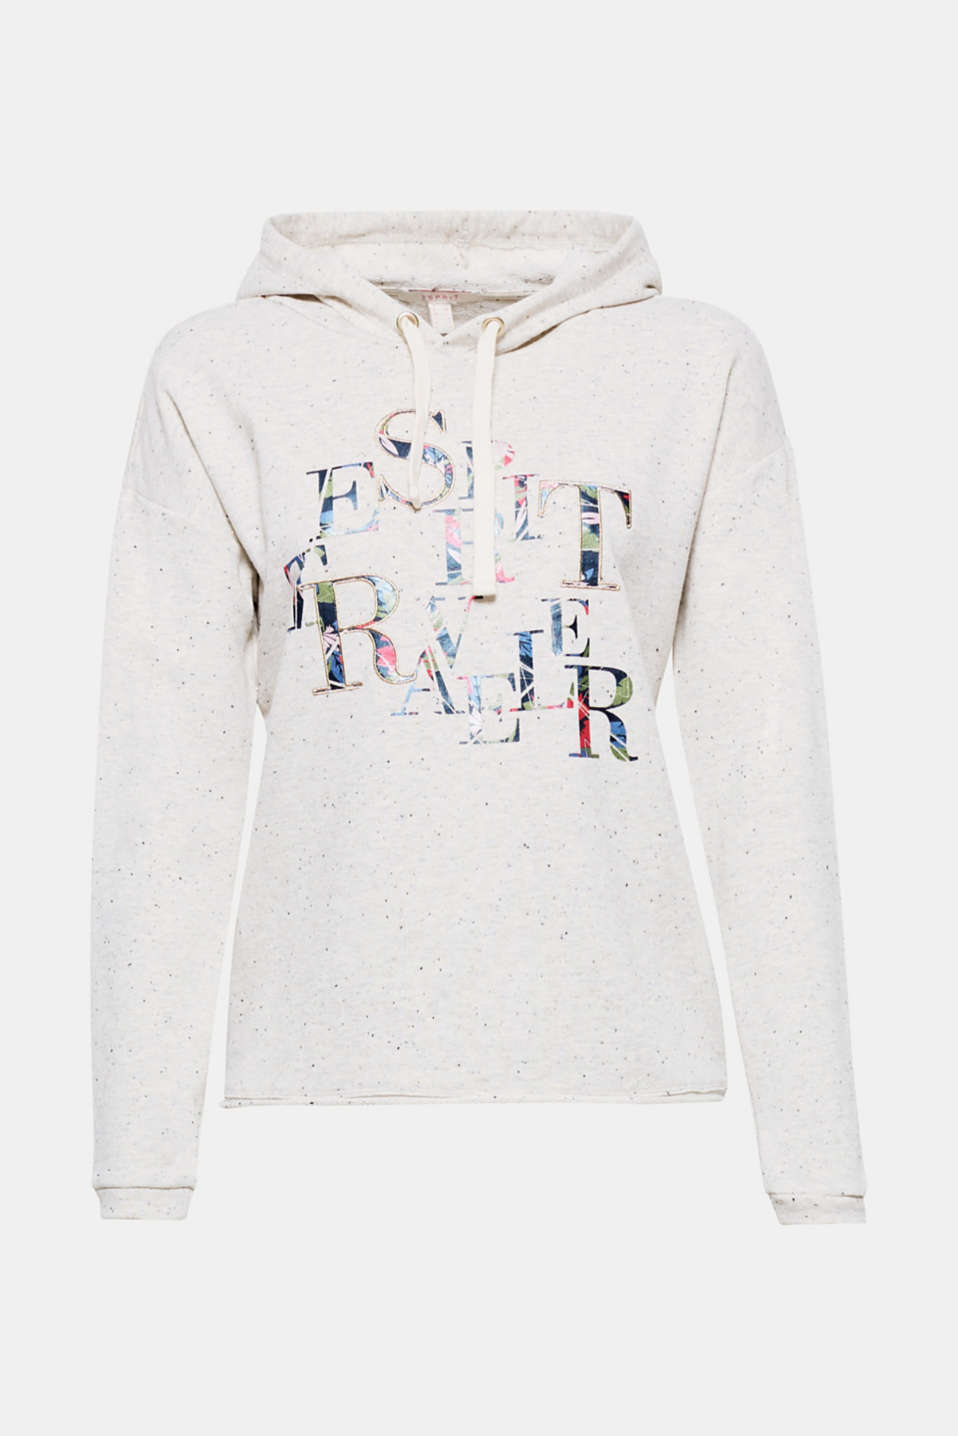 This sporty hoodie in lightweight, melange blended cotton creates a cheerful look with its glitter effects and decorative lettering!